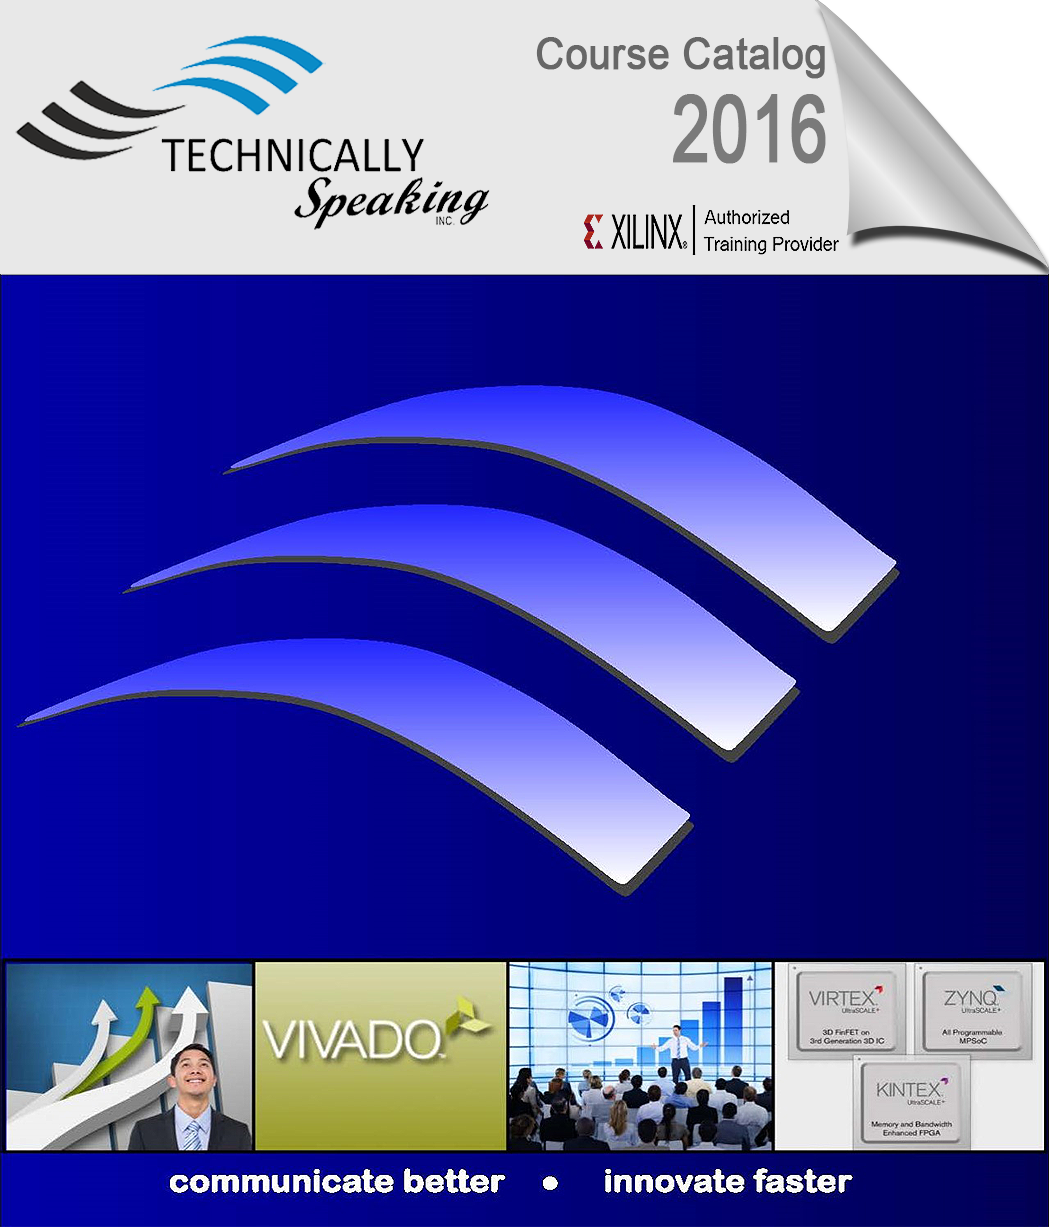 Technically Speaking Course Catalog